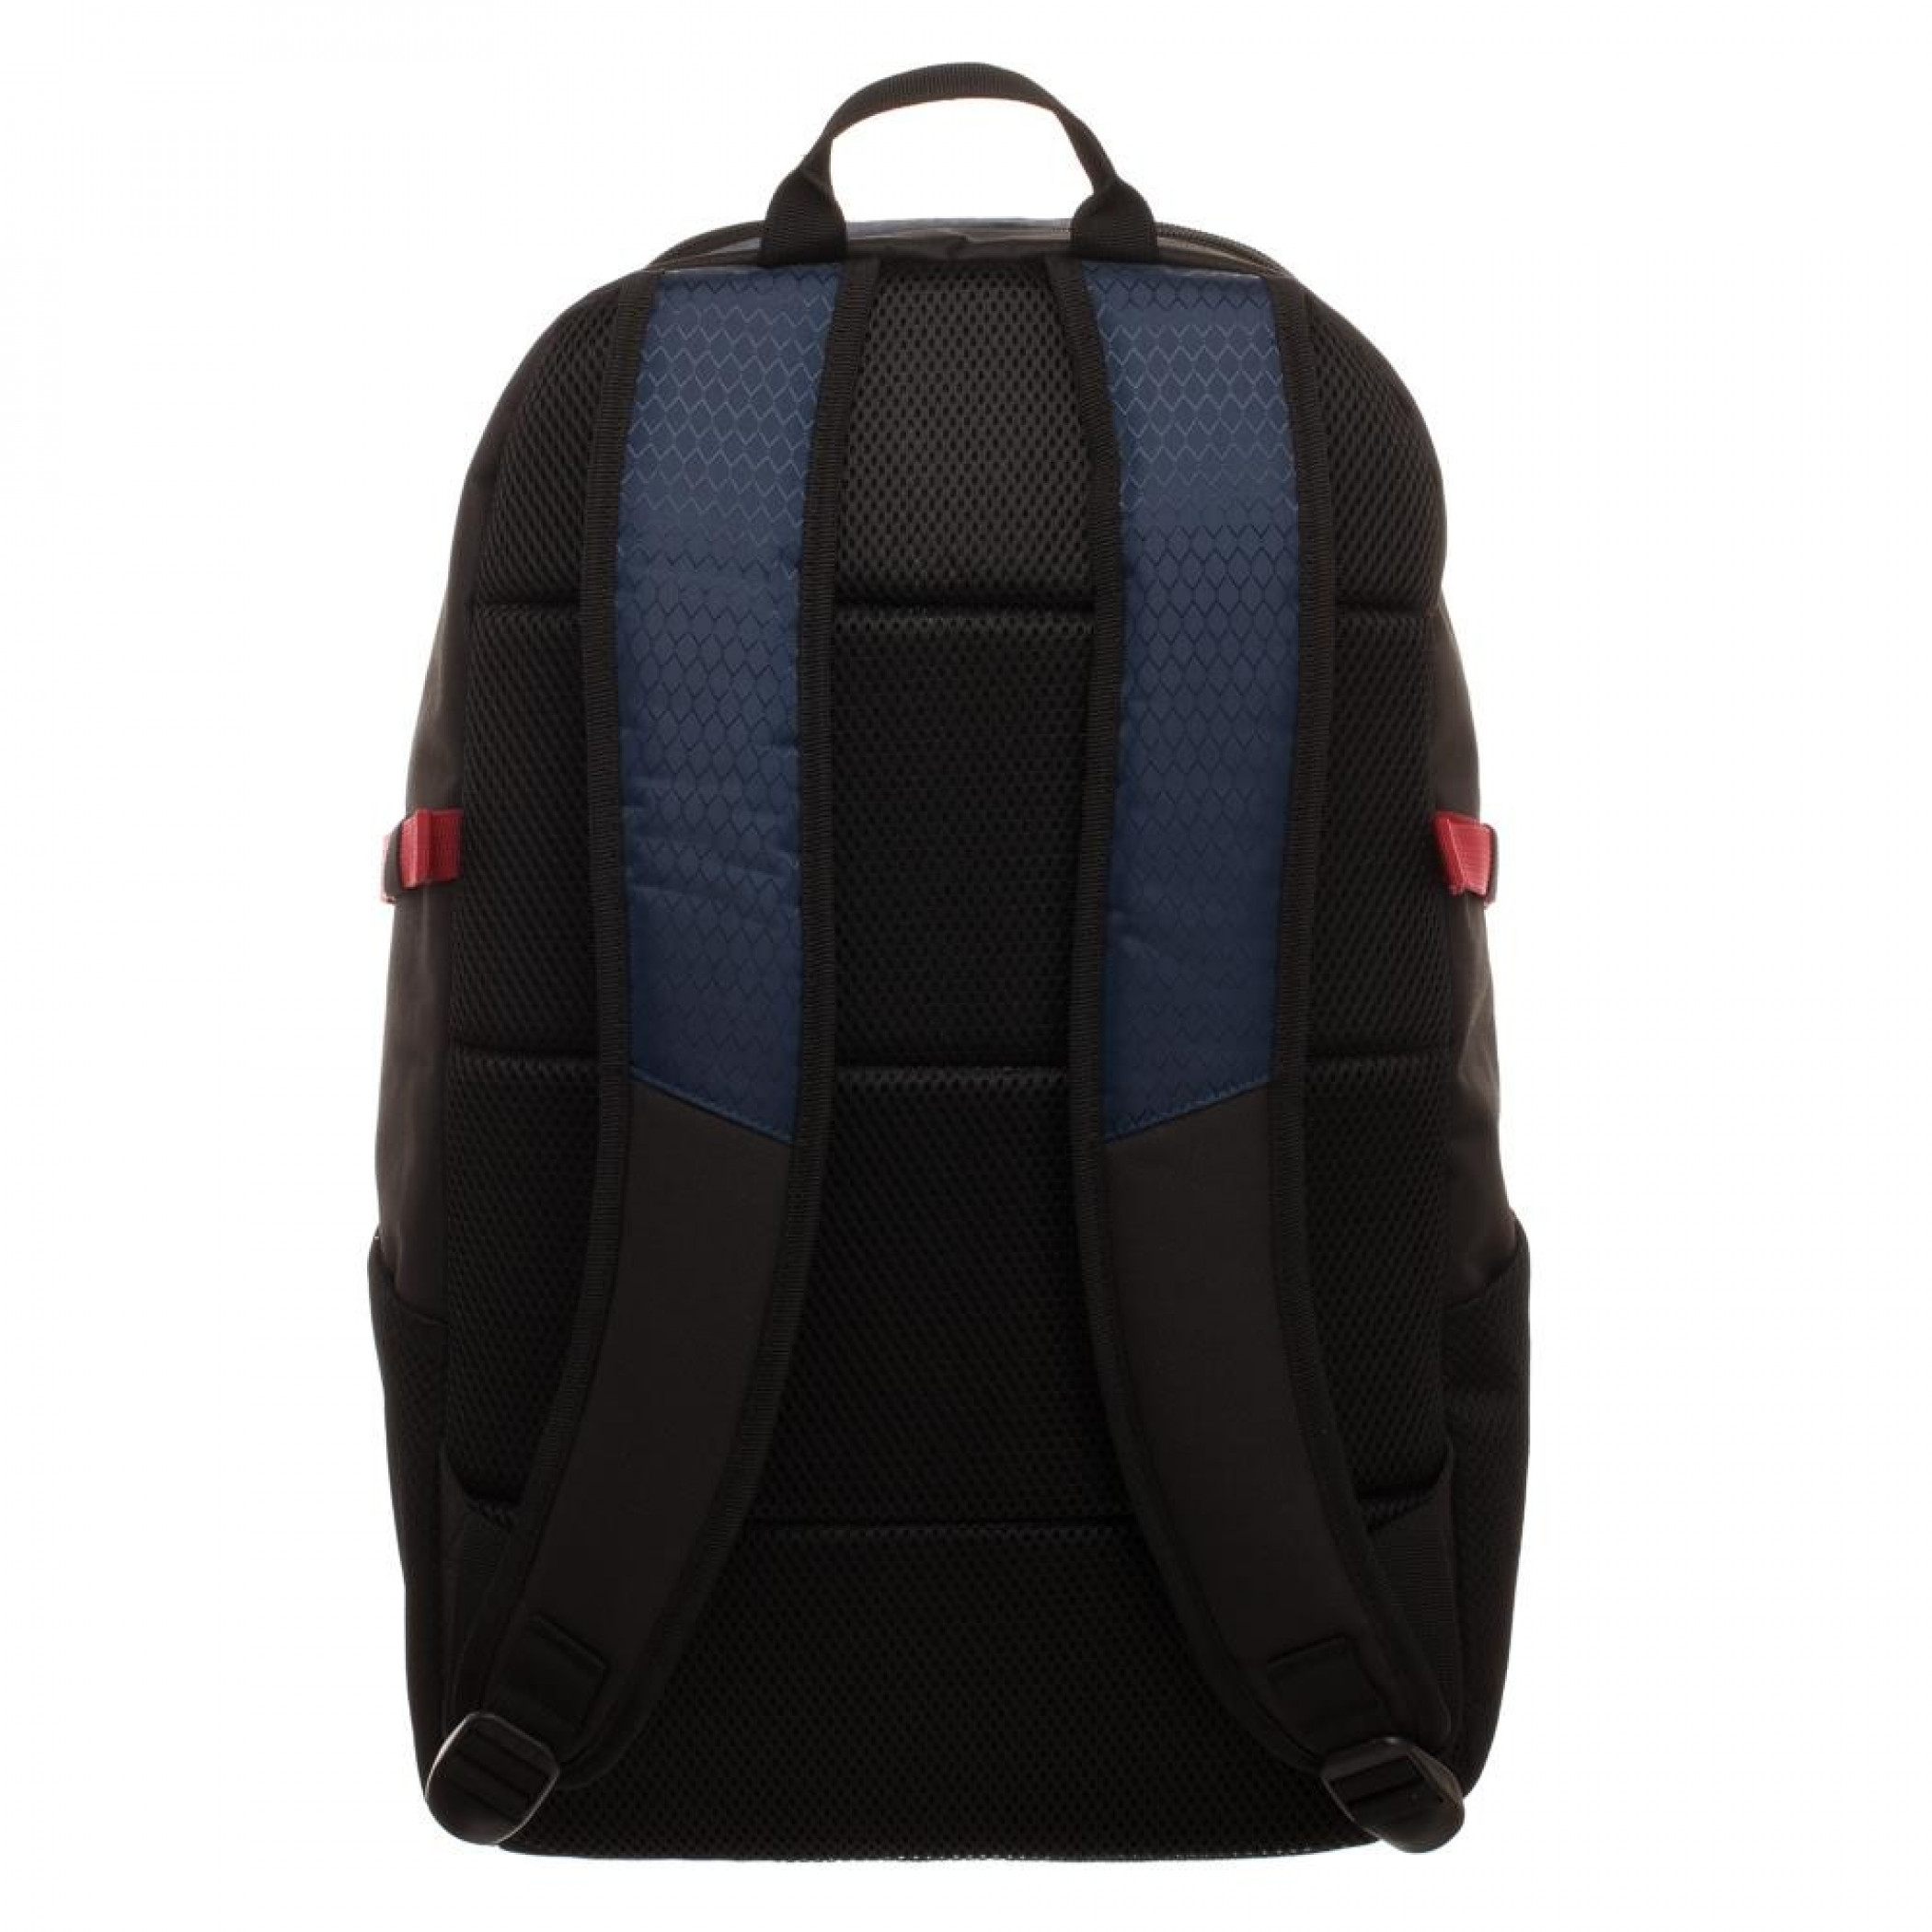 Captain America Suit Up Backpack